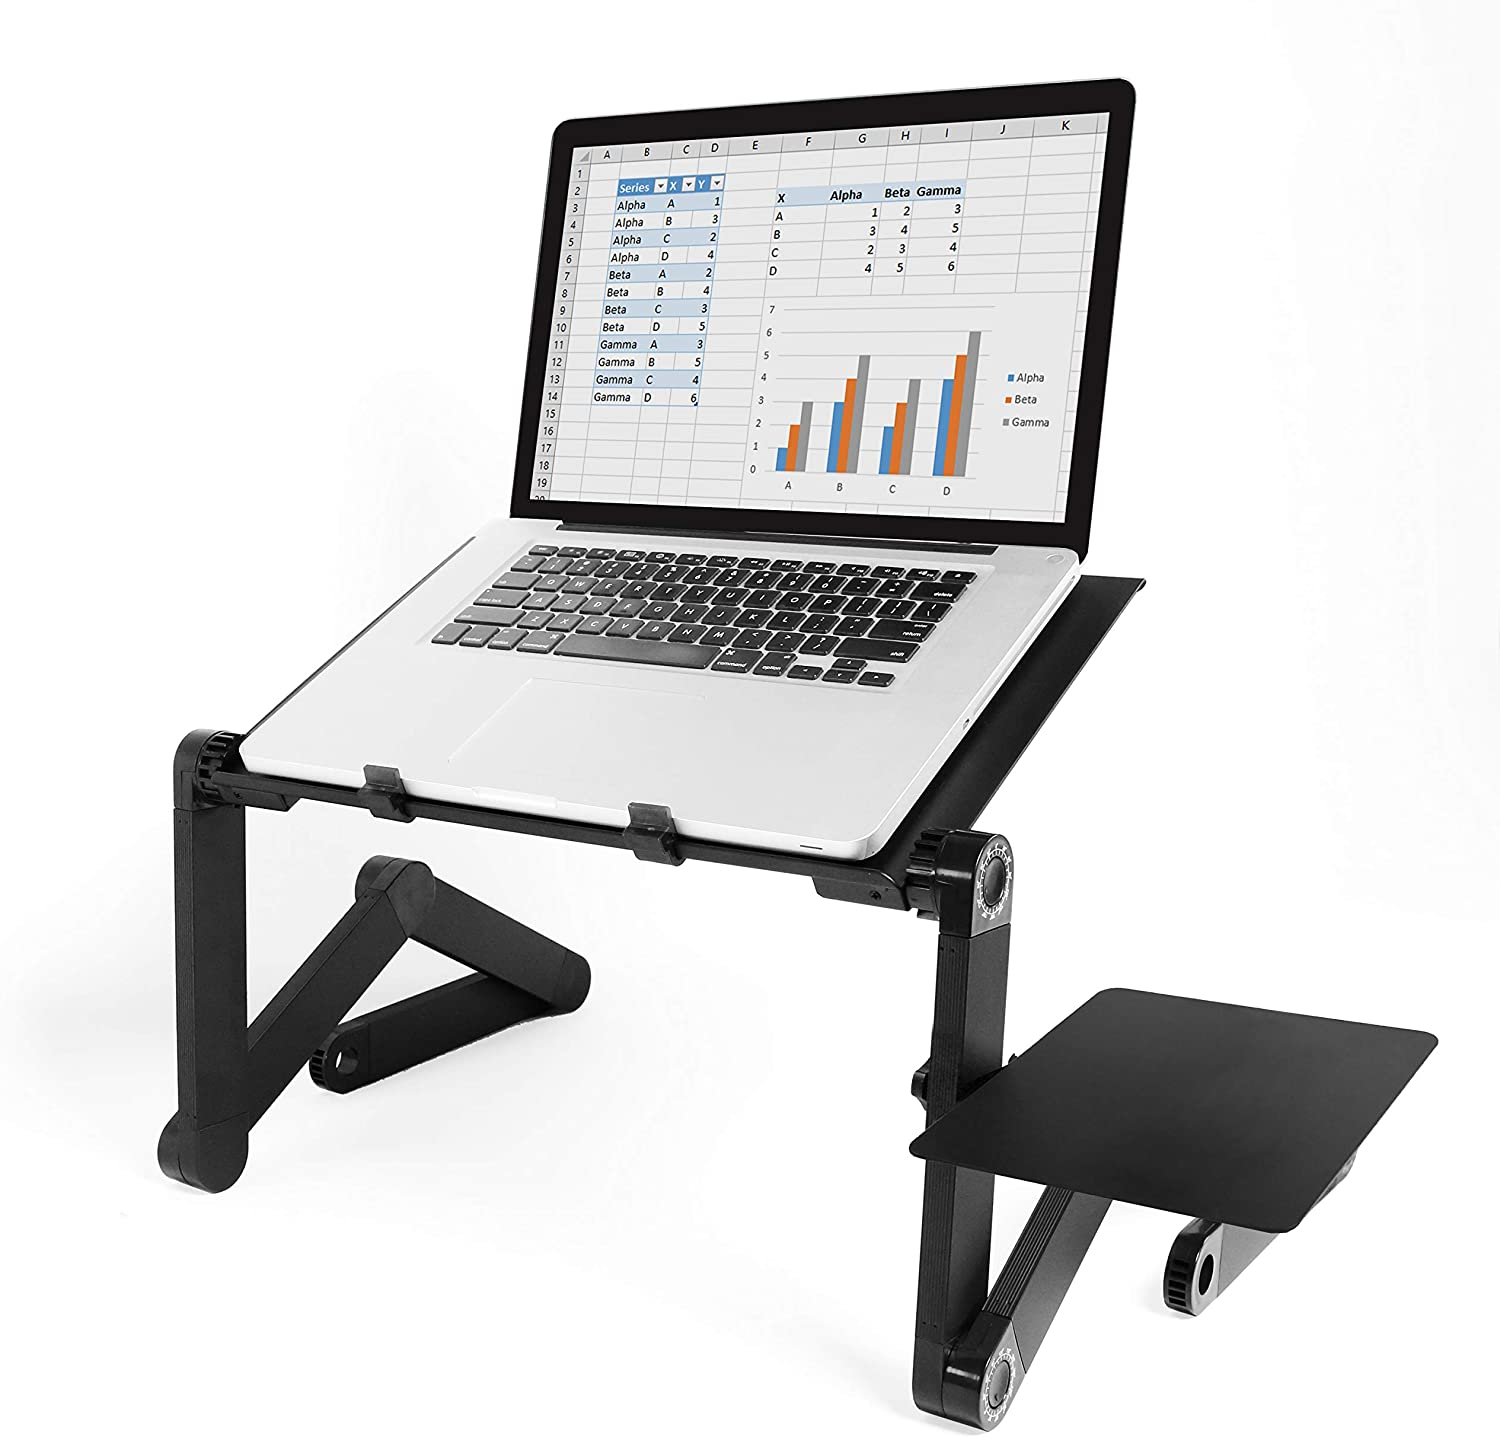 FLEX DESK Adjustable Laptop Stand with Mouse Pad – Portable Lightweight Standing Laptop Table for Desk Bed Sofa - Ergonomic Lap Workstation, Keyboard Riser with Ventilation, Ultrabook MacBook Notebook